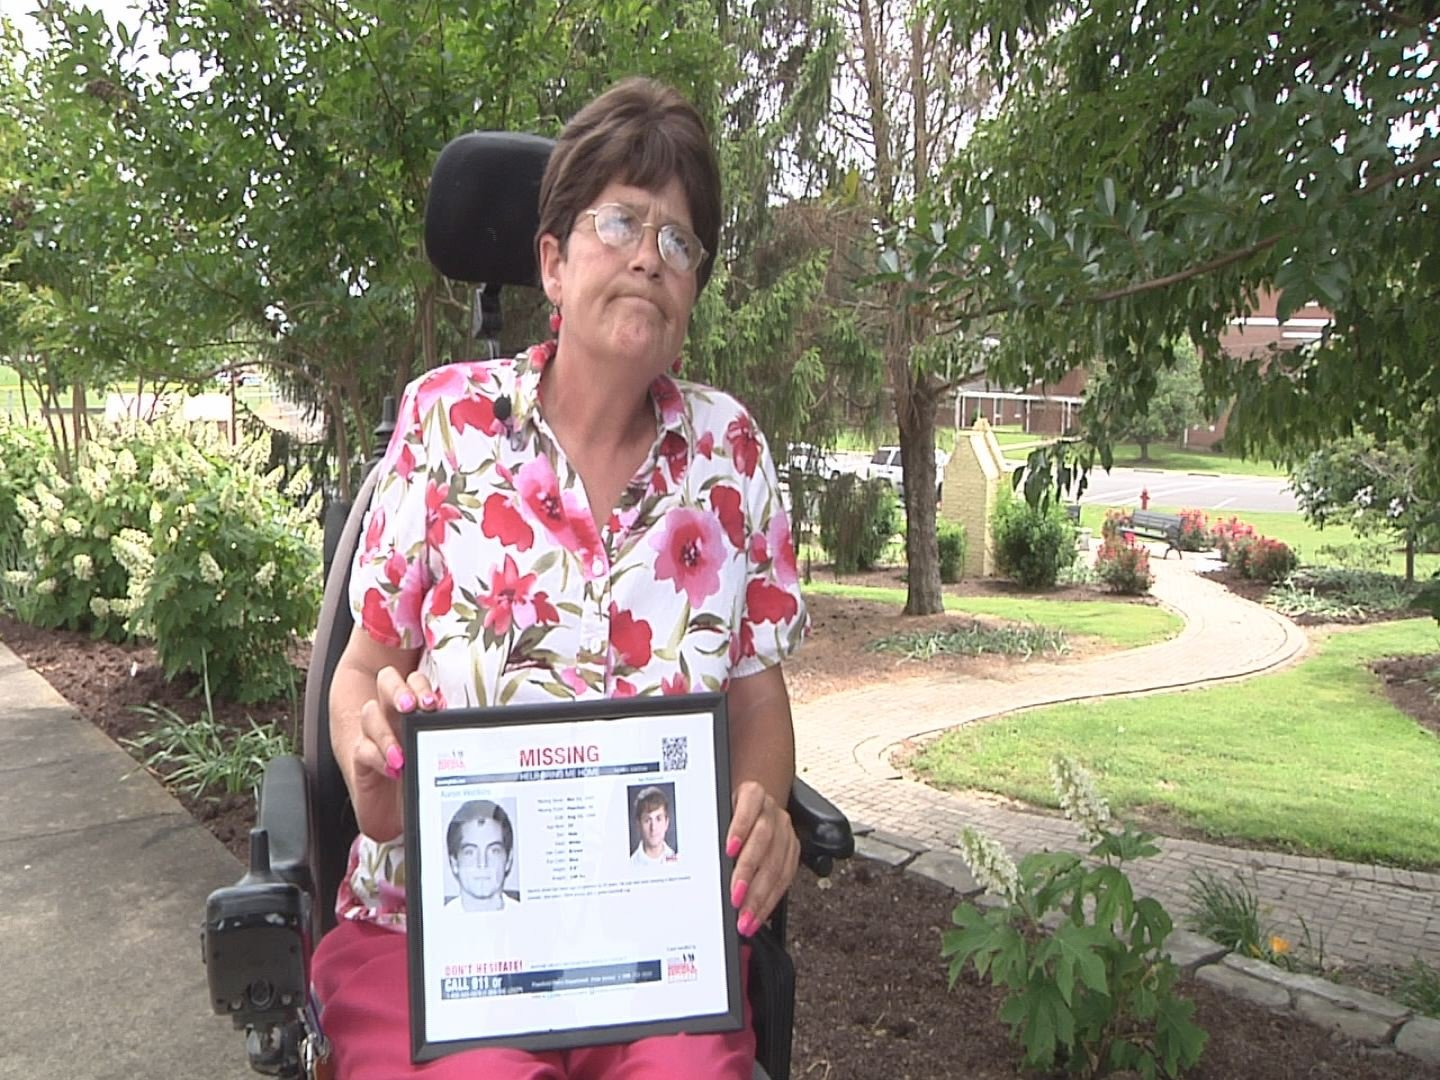 Barbara Erickson has been looking for her son for 10 years.